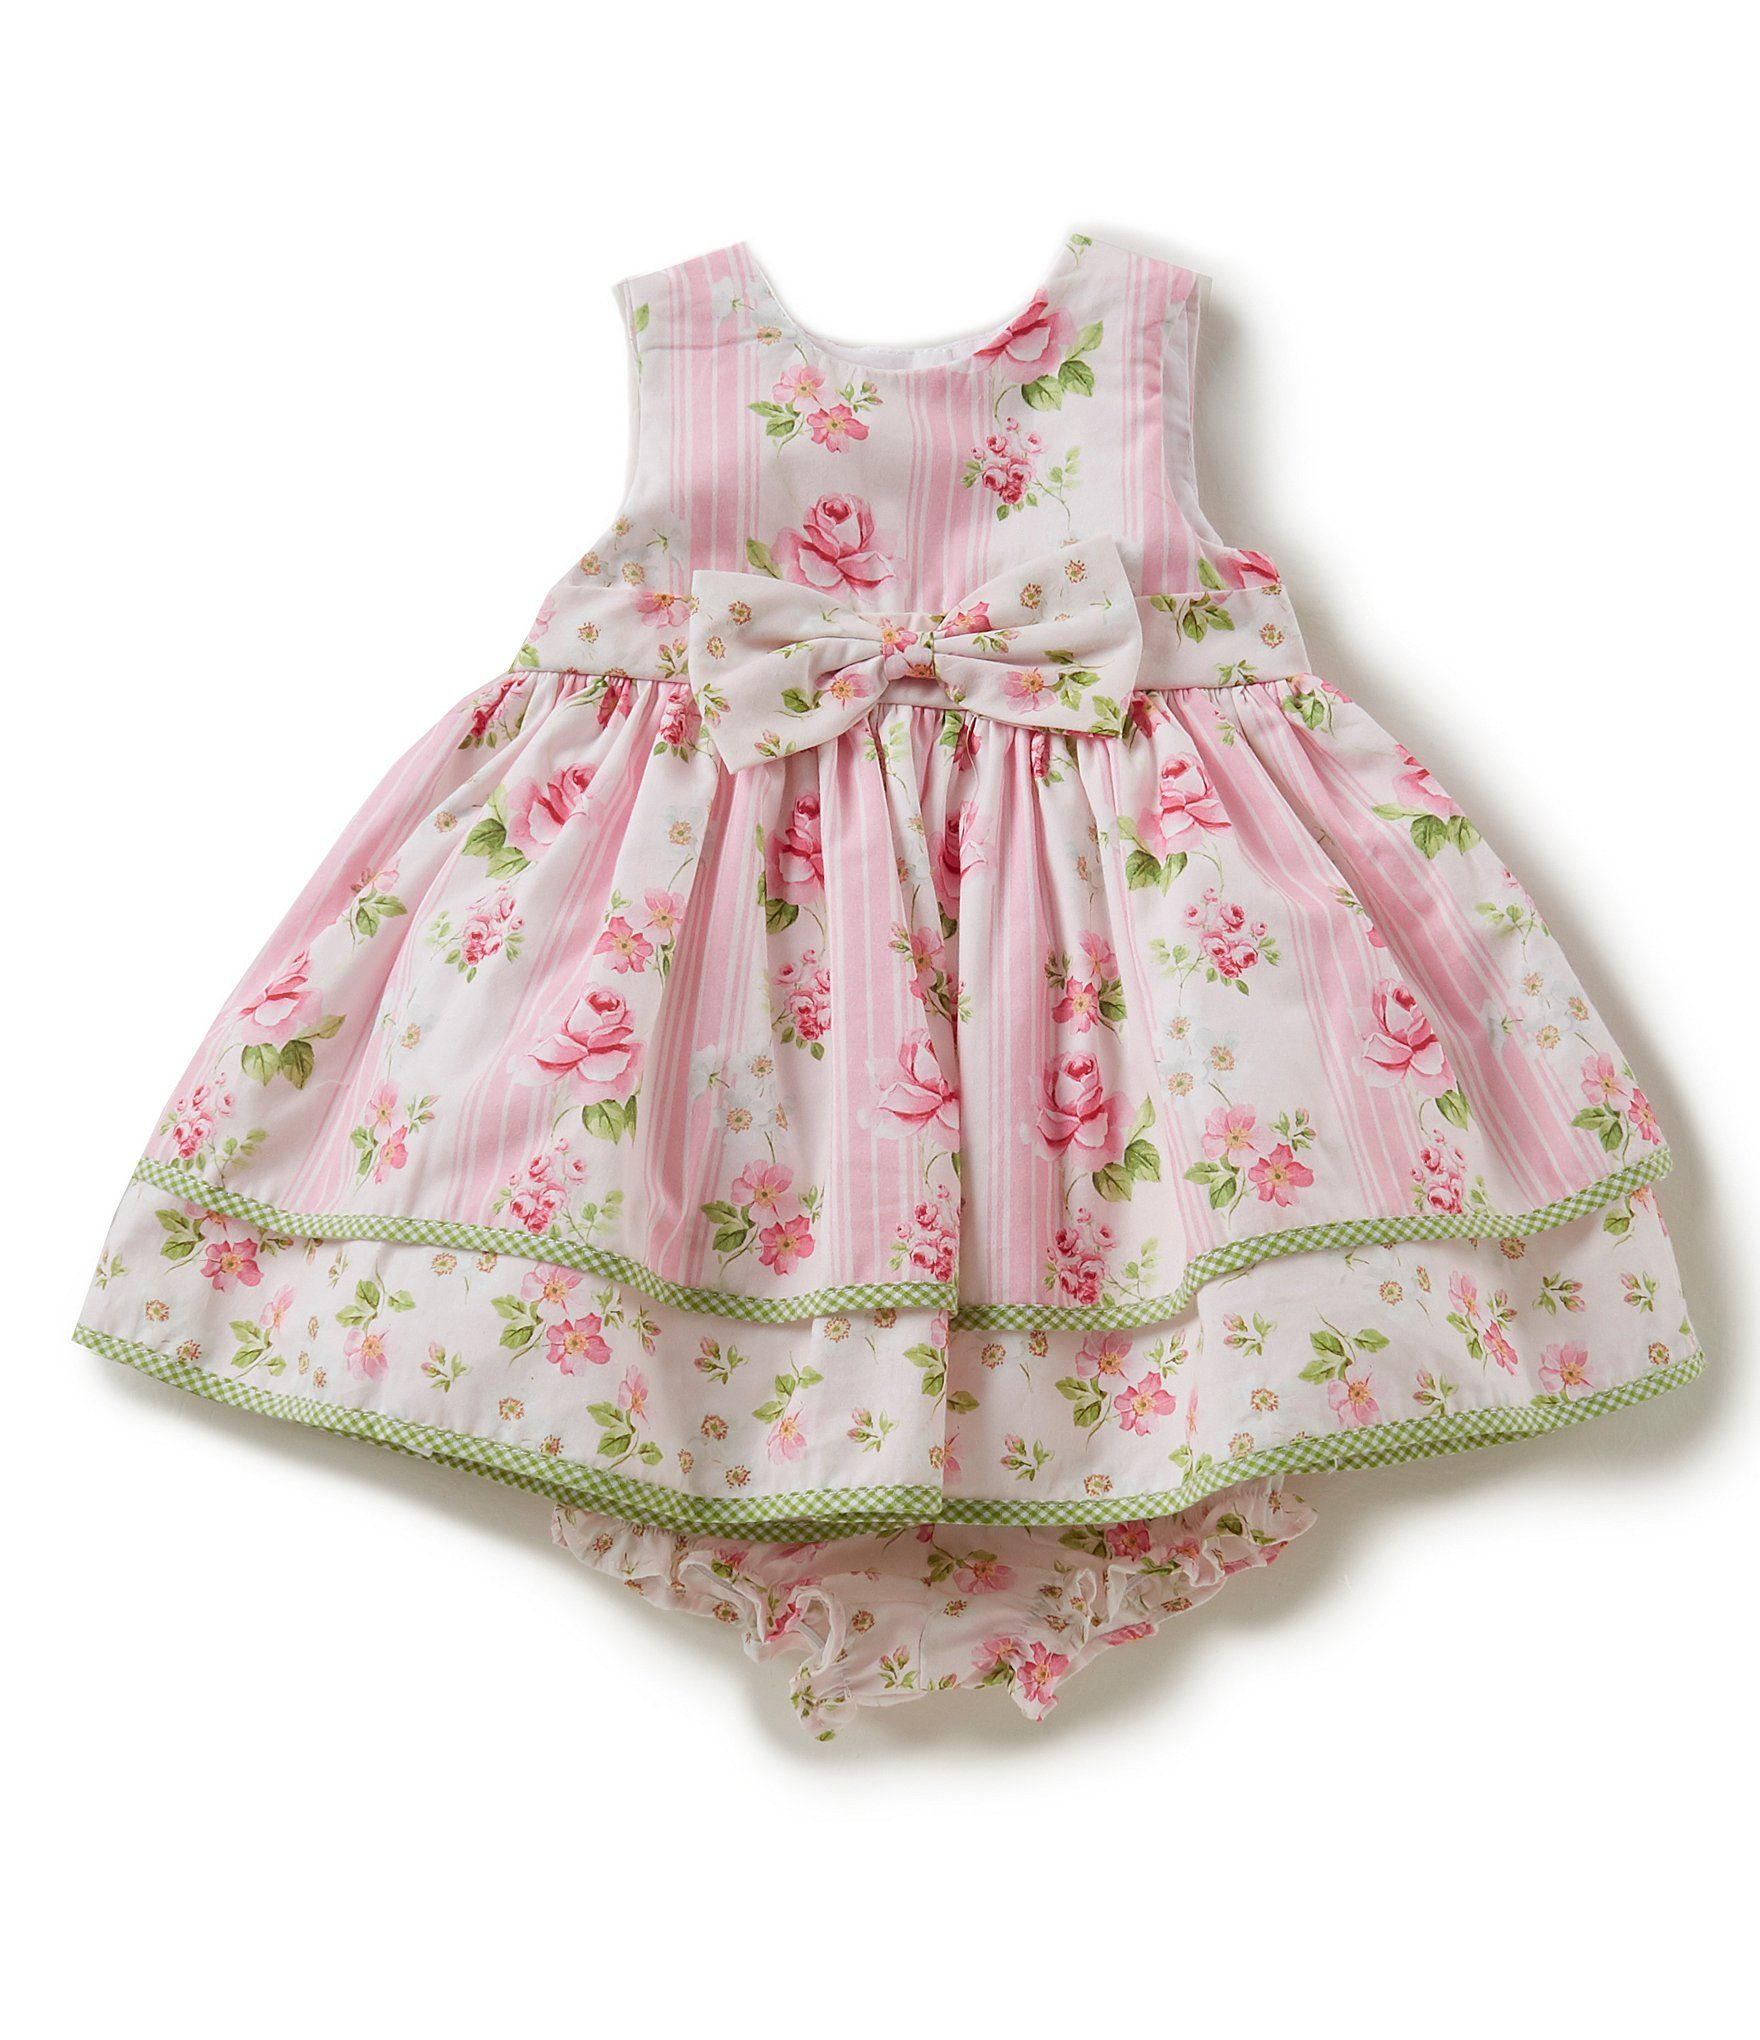 Laura Ashley London Baby Girls Newborn 24 Months Sleeveless Floral